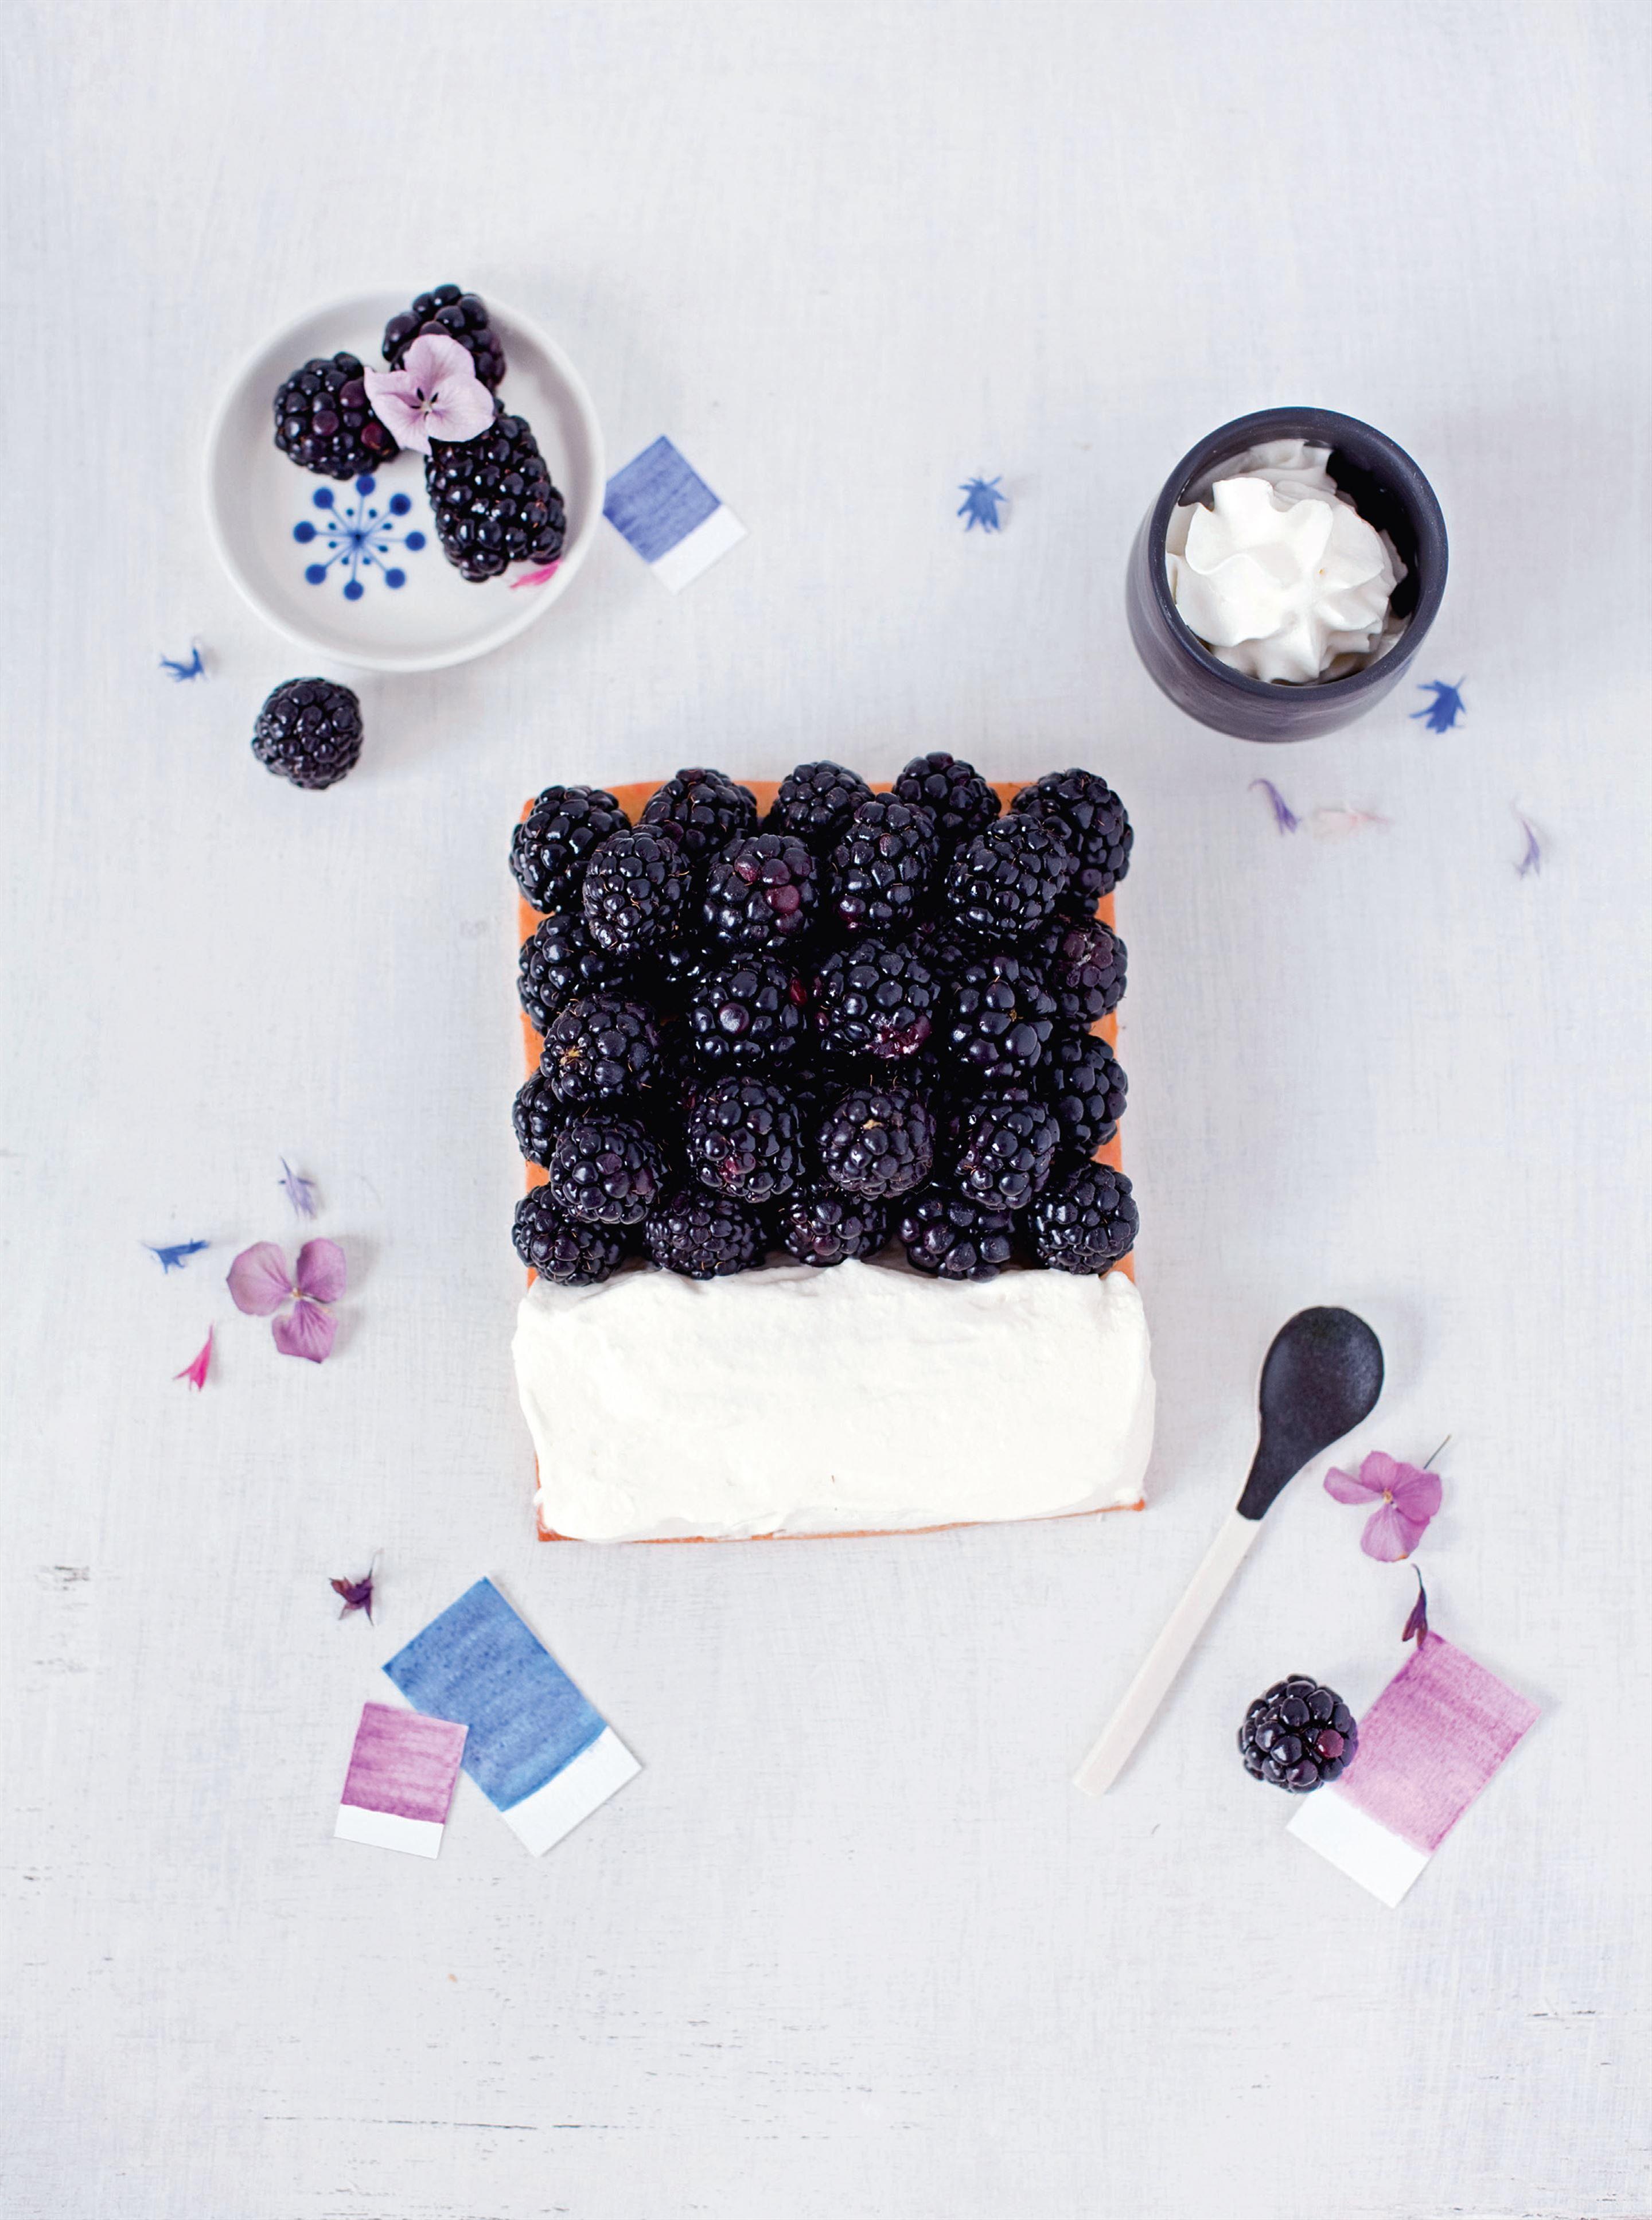 Blackberry - chantilly